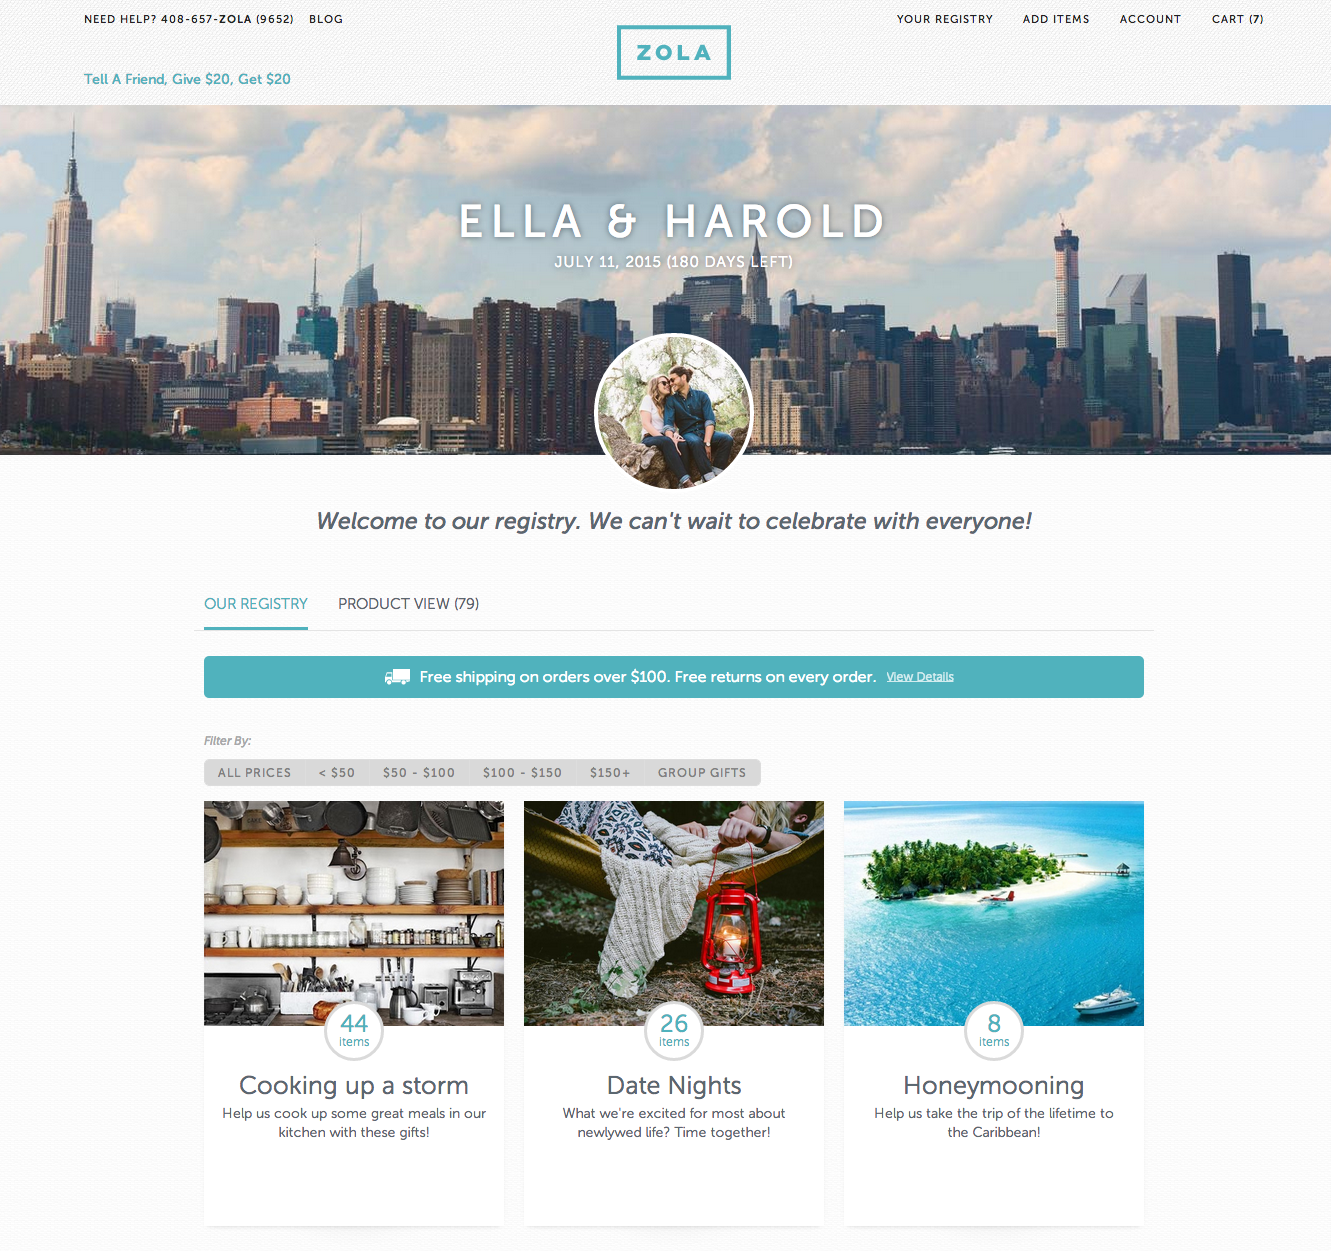 zola-registry-page.png